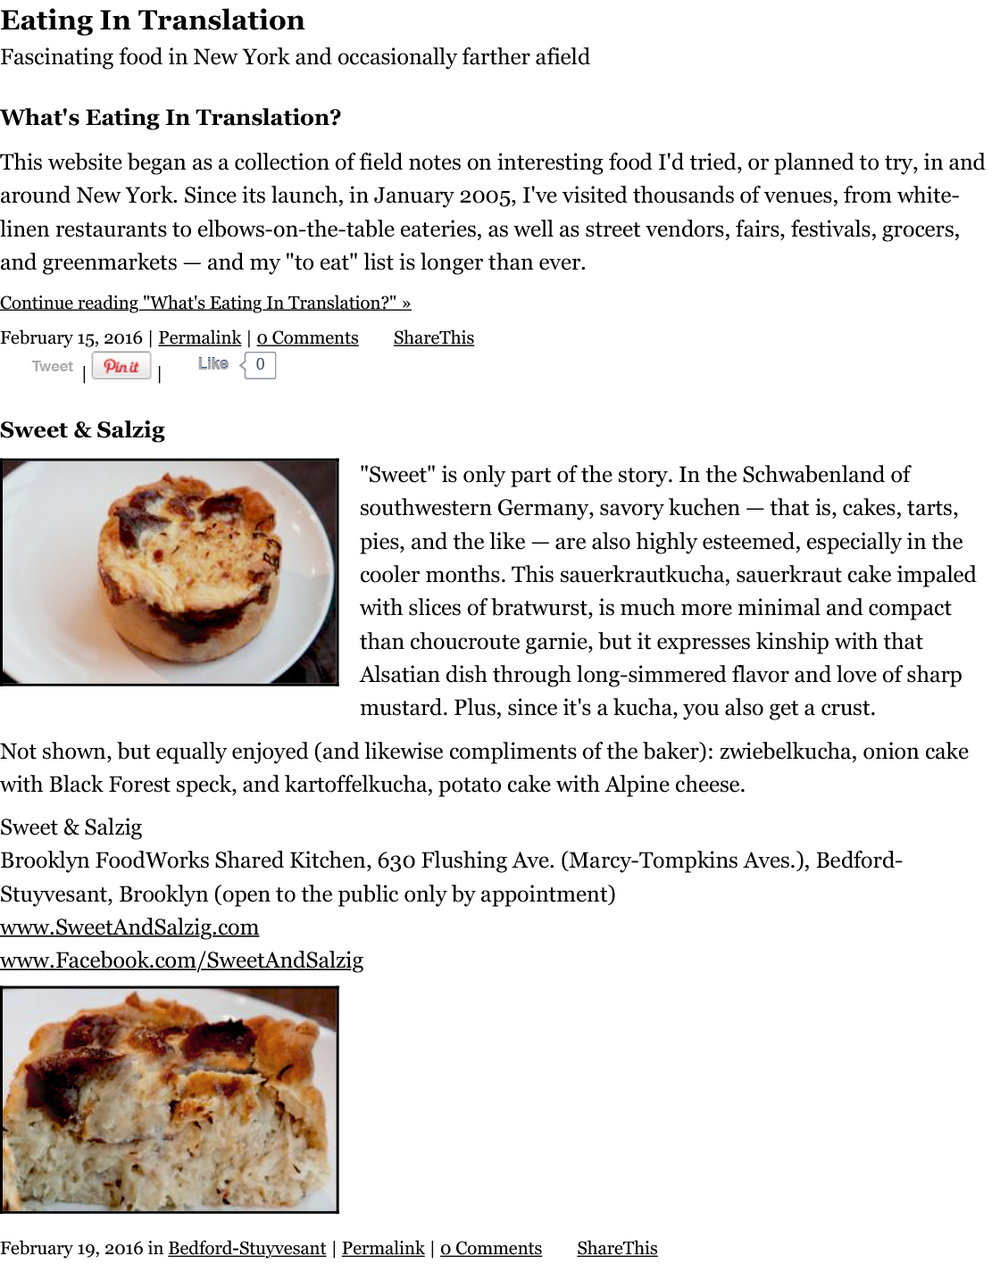 Eating in Translation Article